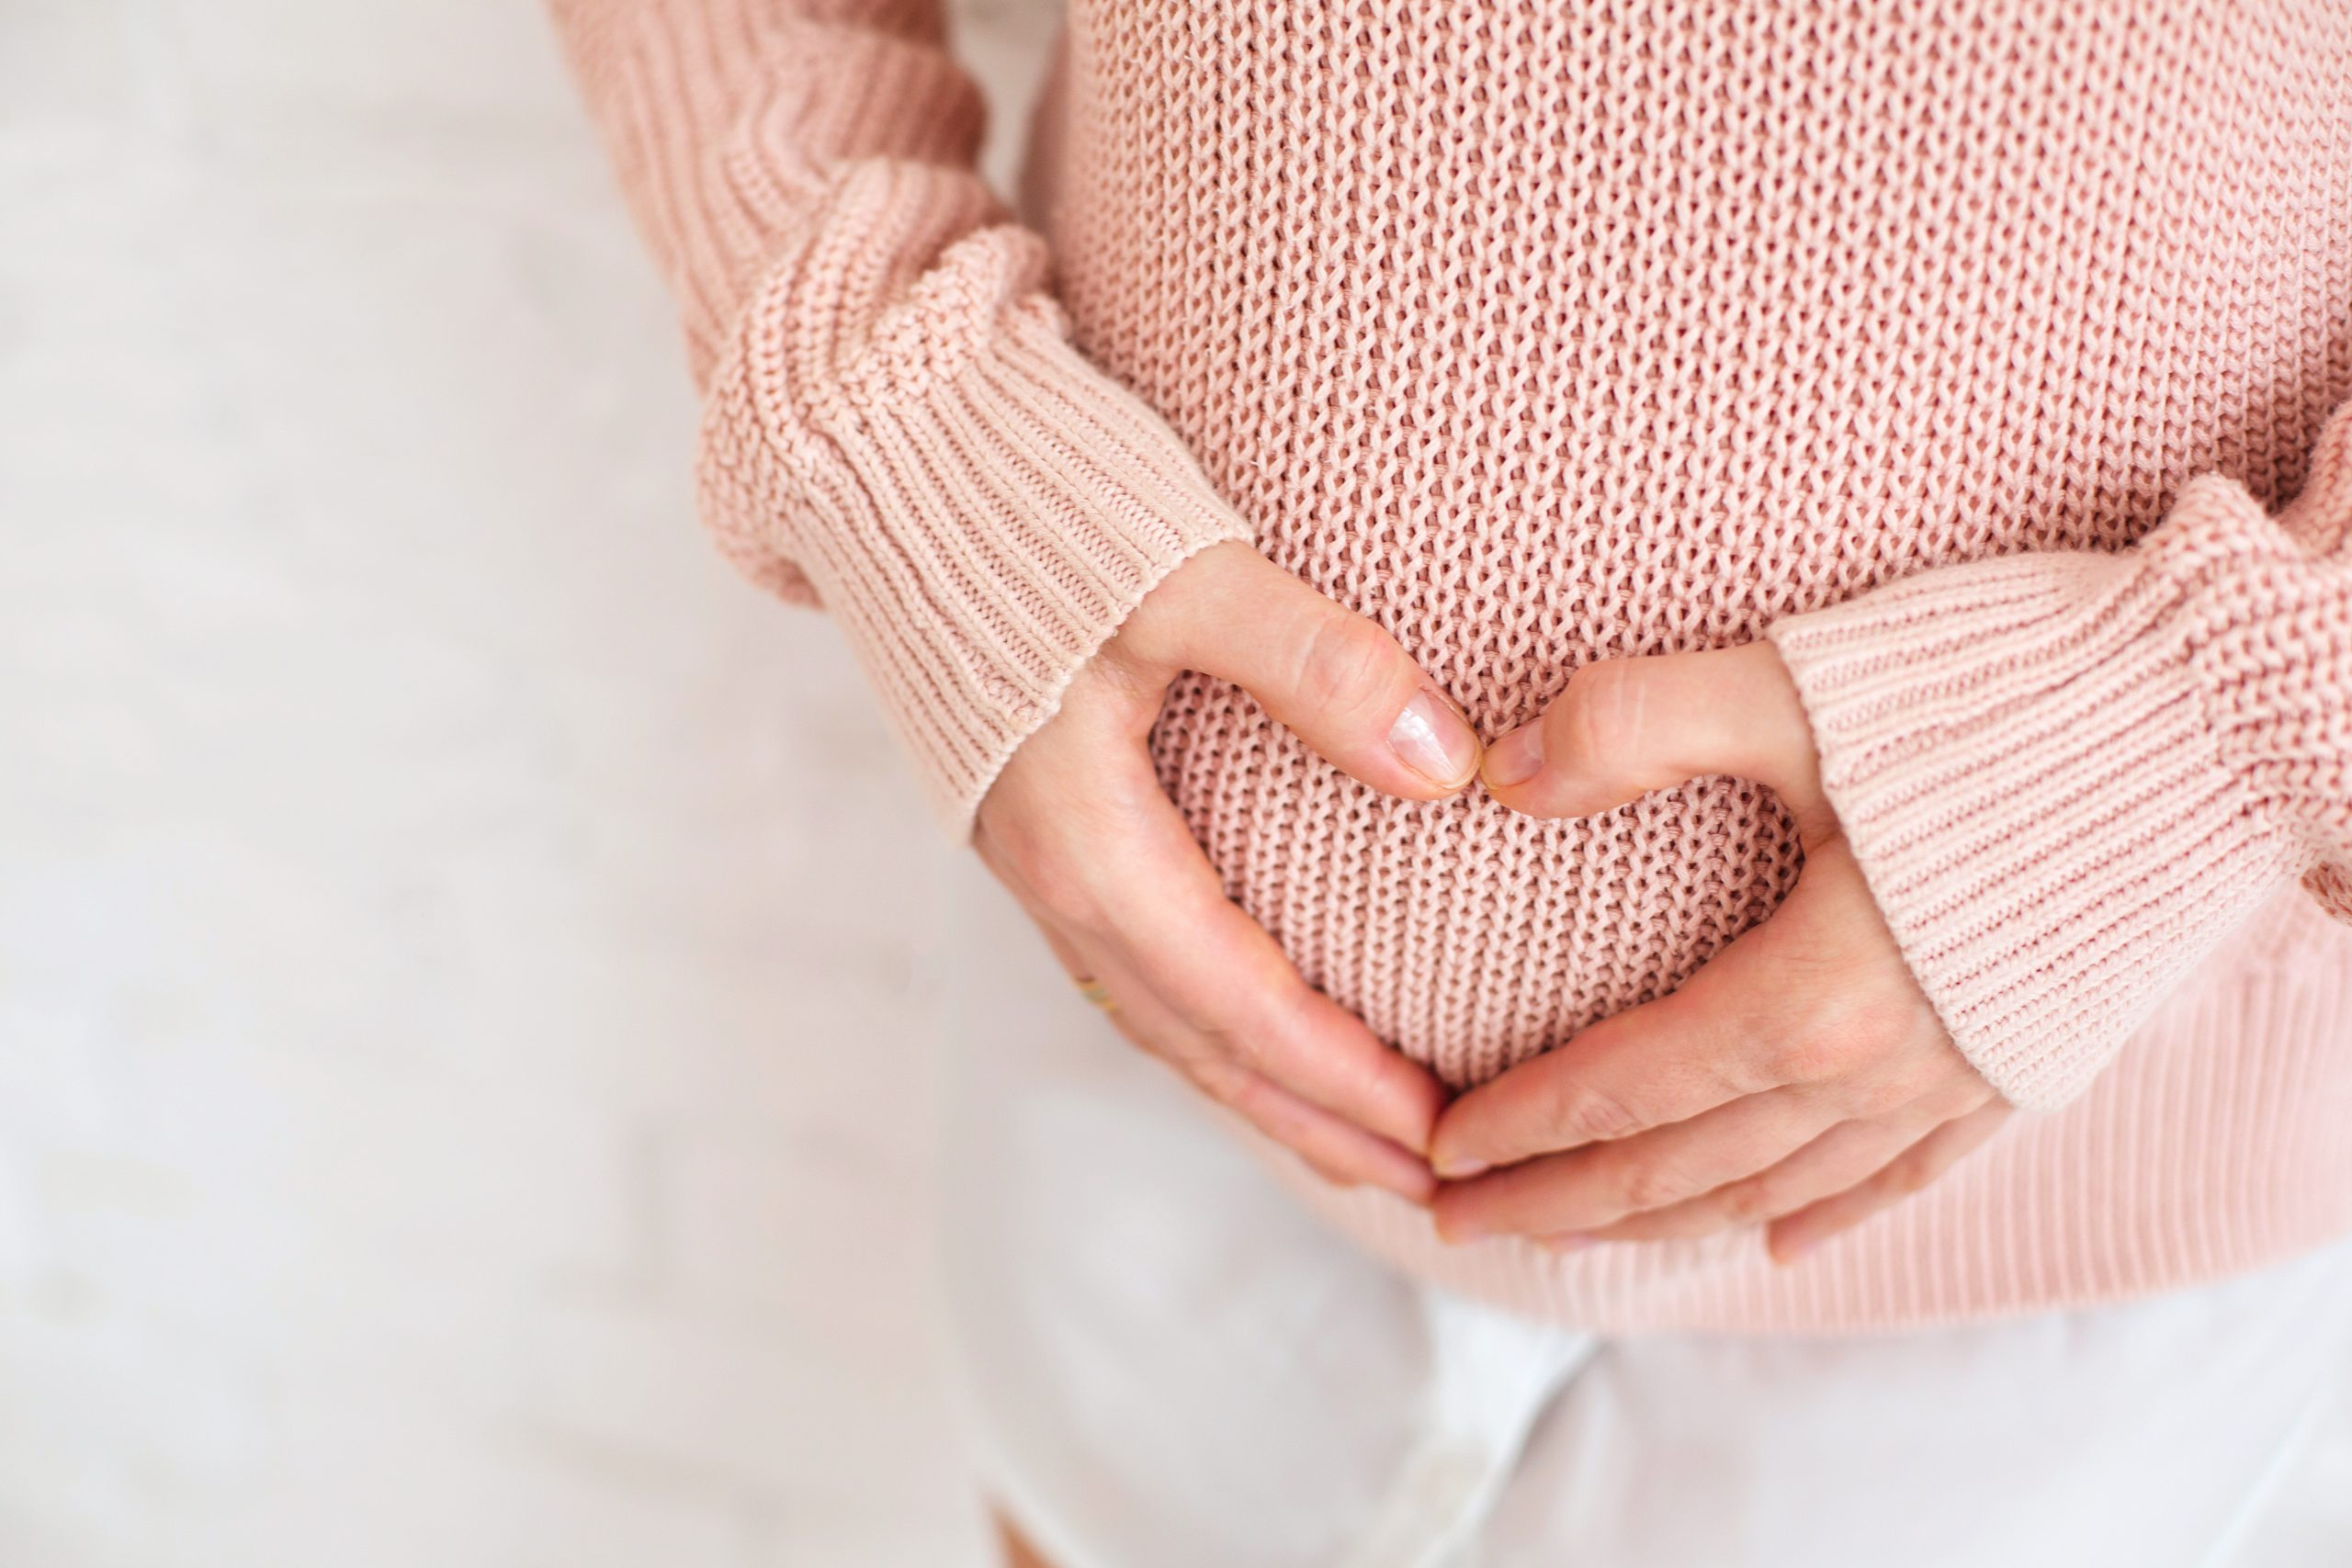 pregnant girl heart hands over belly absolutely adell